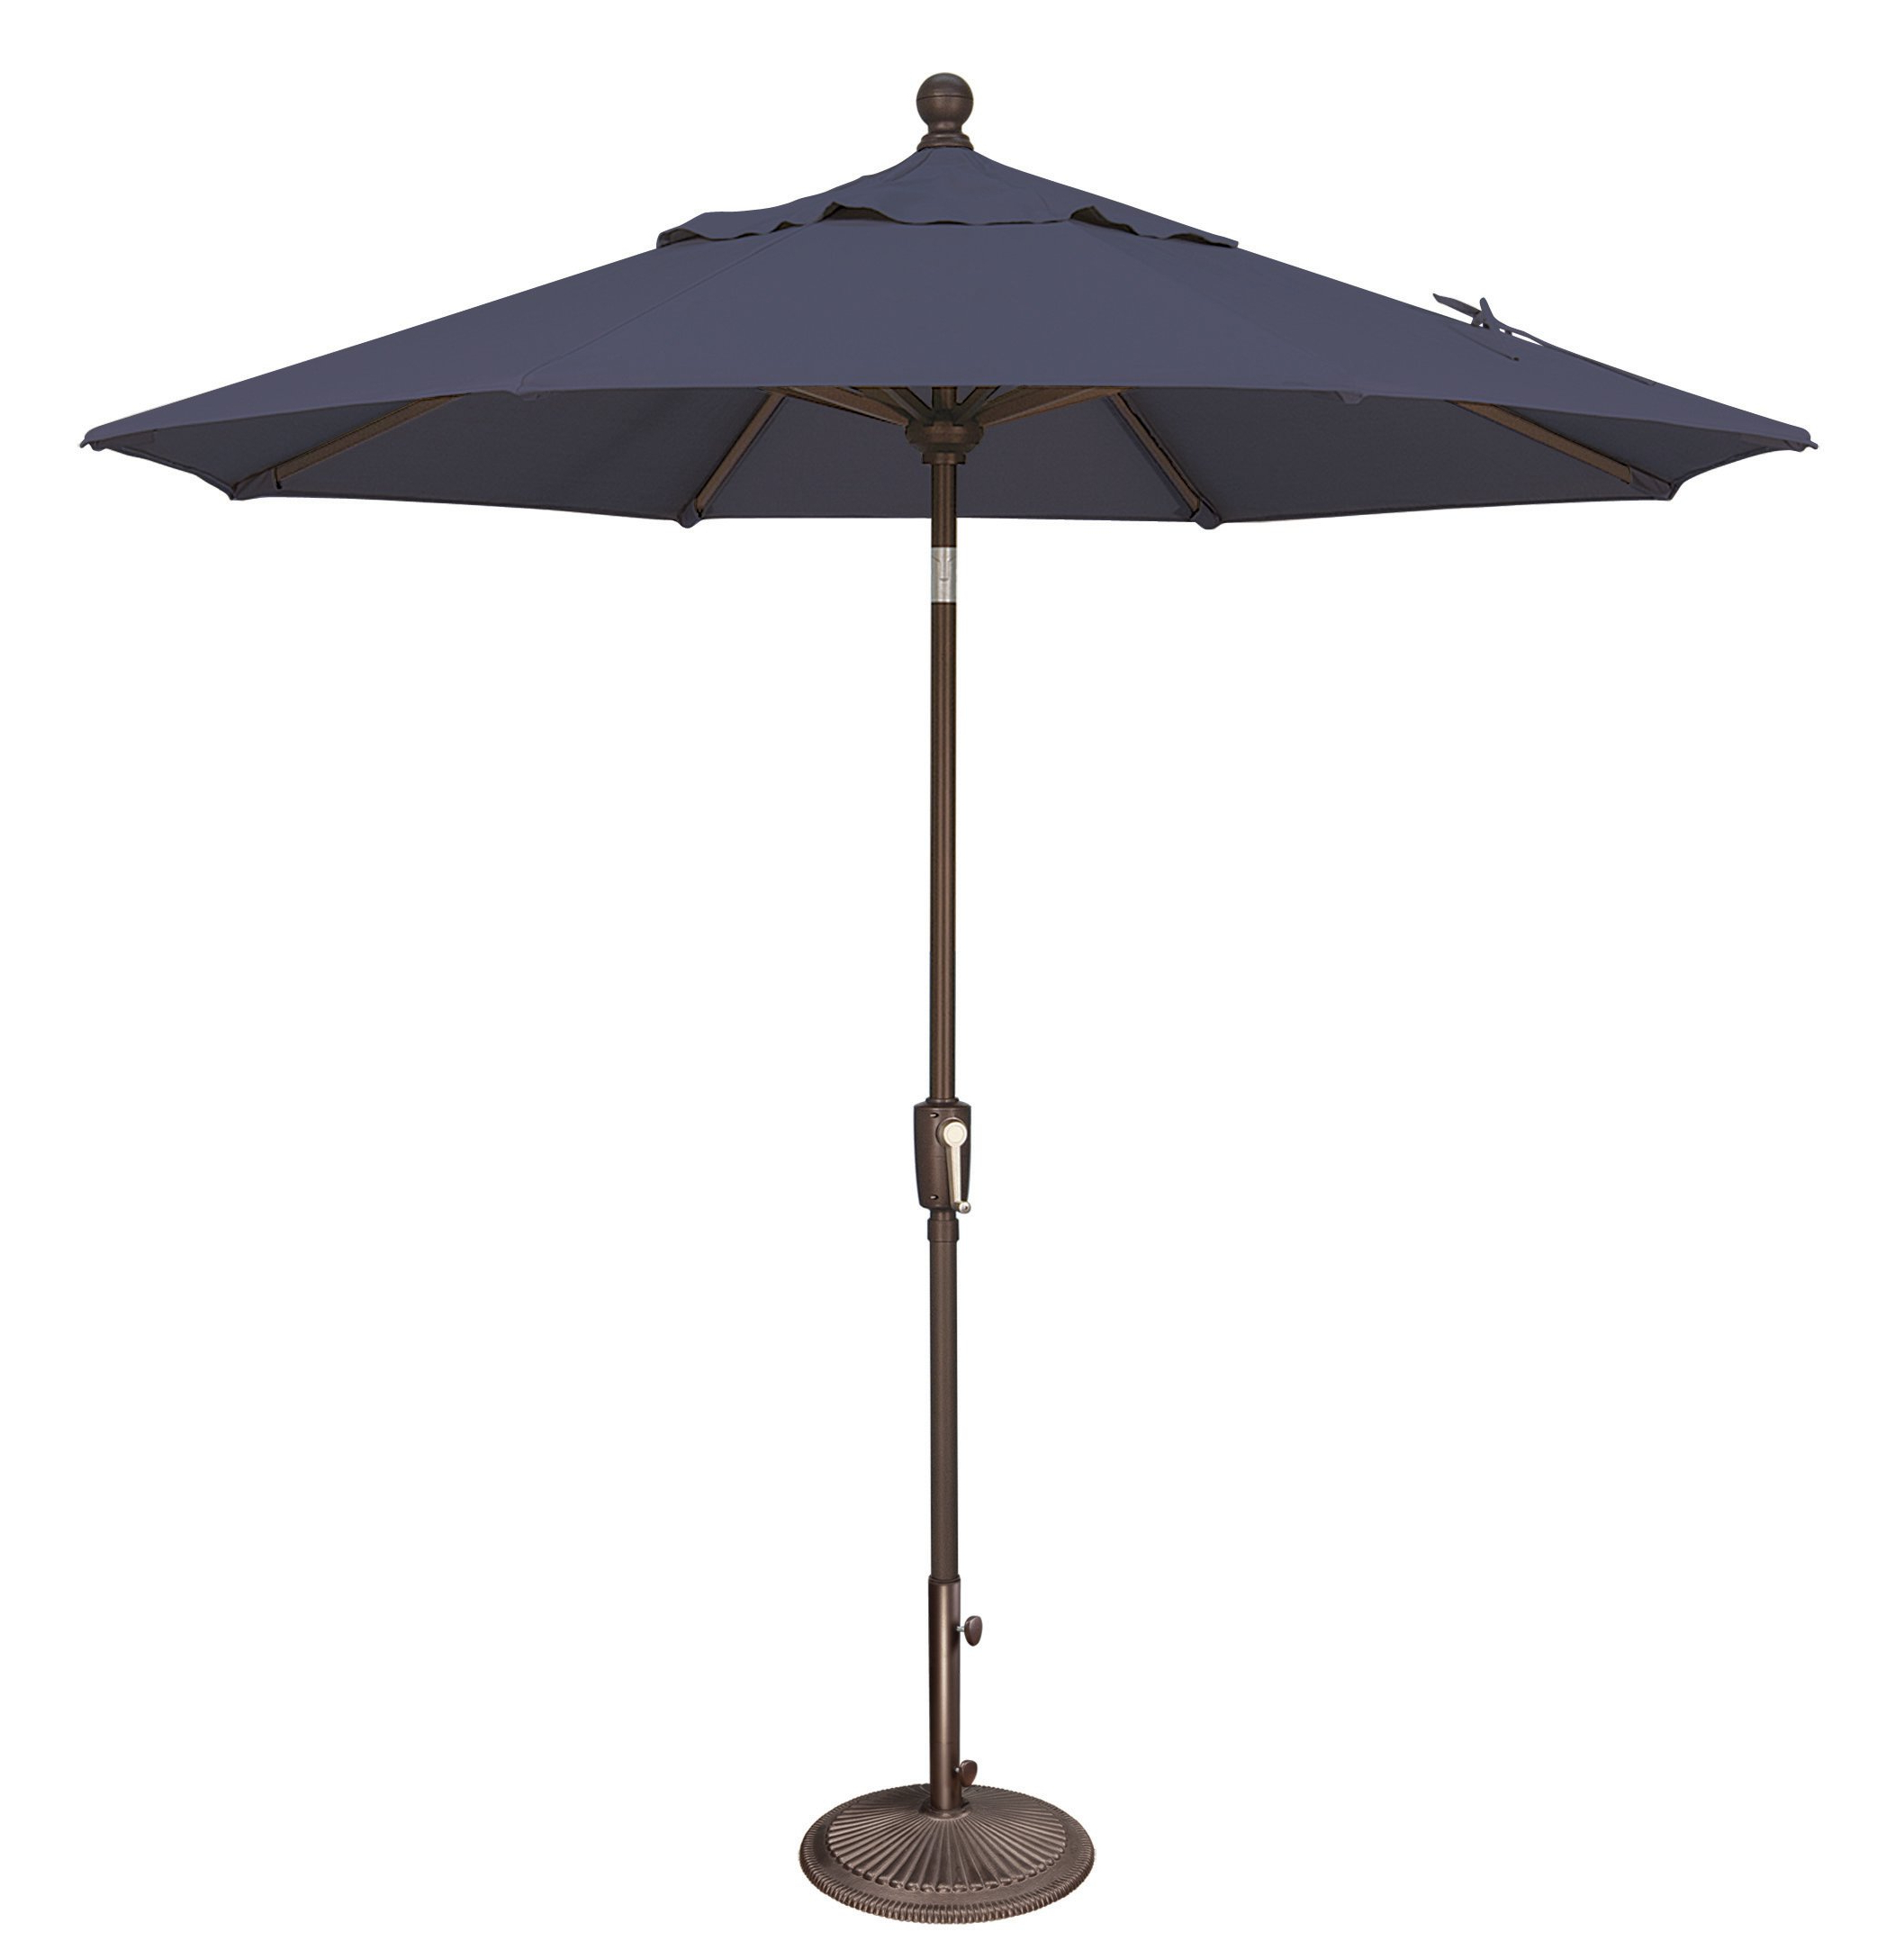 Most Recent Launceston 7.5' Market Umbrella Intended For Market Umbrellas (Gallery 19 of 20)